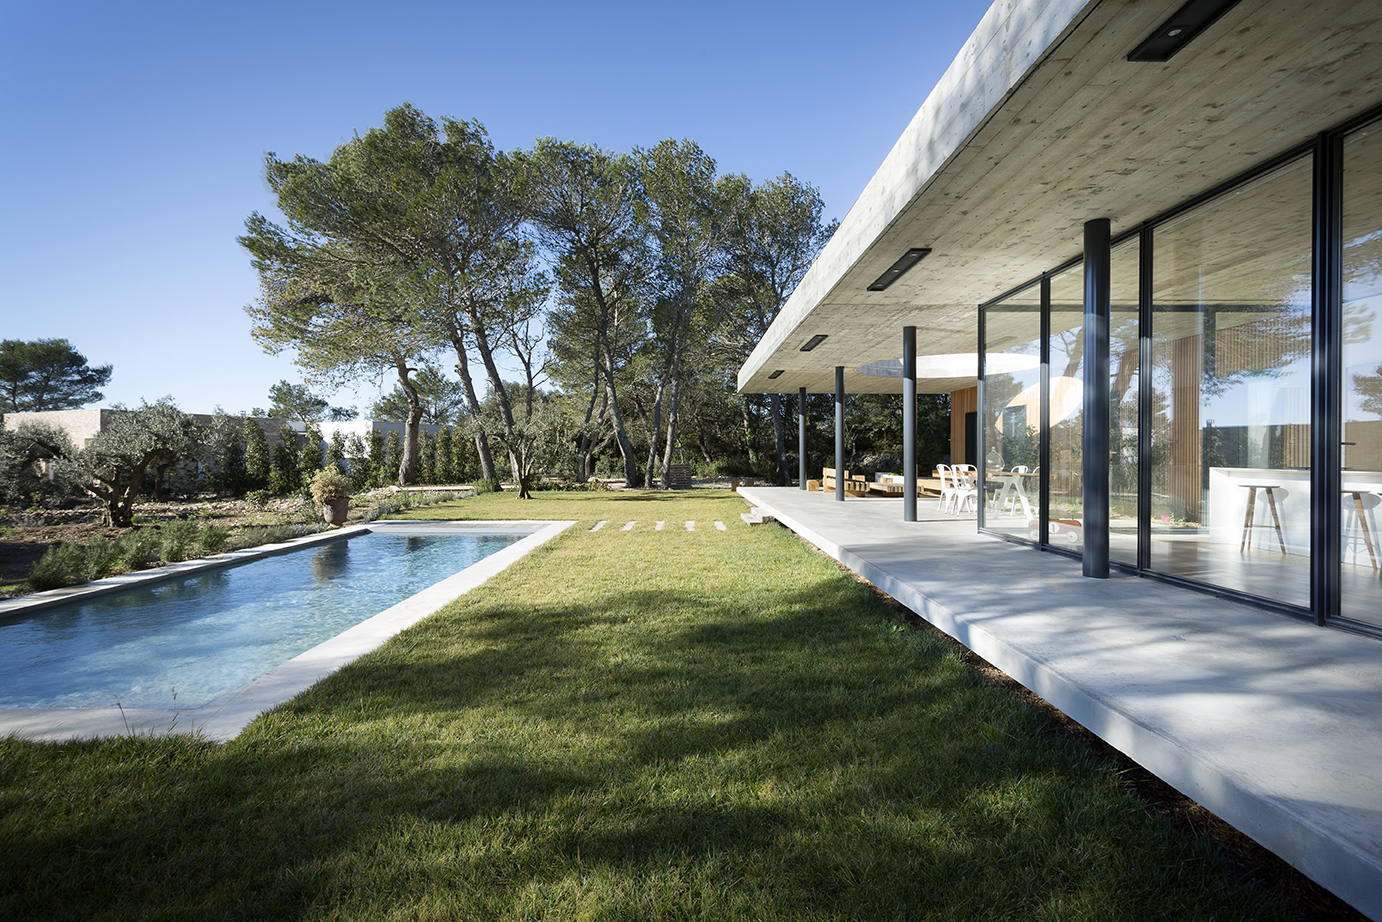 anthony-pascual-villa-nimes-house-architecture-architectural-teamarchi-2017-photographe-marie-caroline-lucat